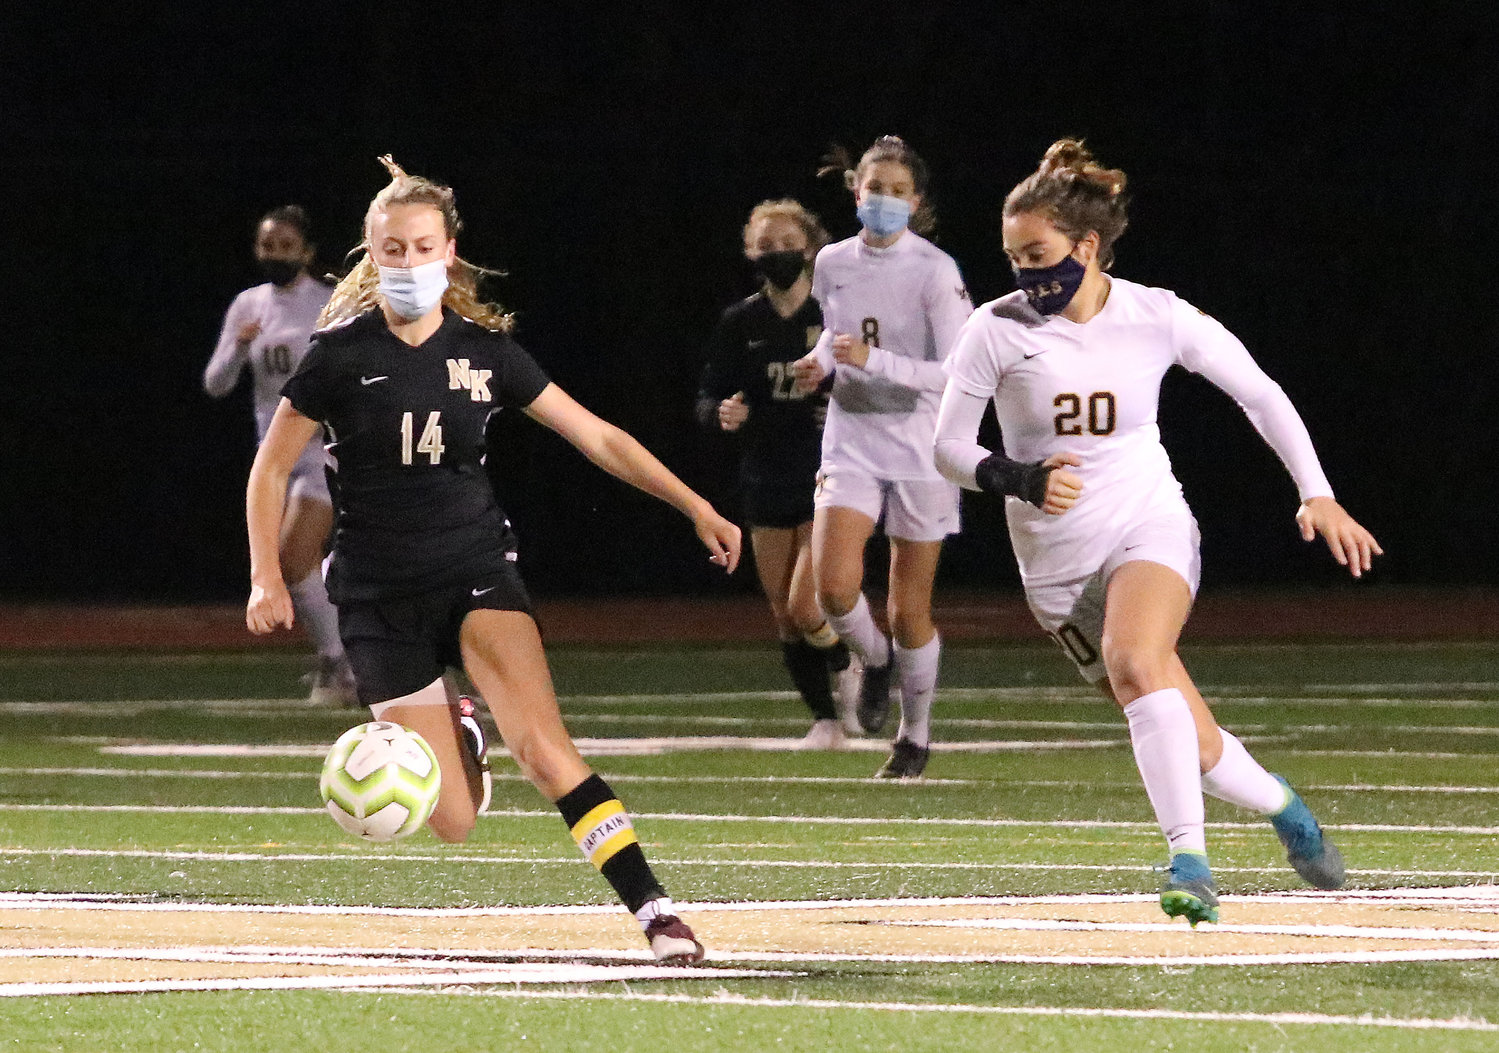 Tess Gagliano (right) runs after an Eagles' goal kick during the playoff game on Tuesday at North Kingstown.